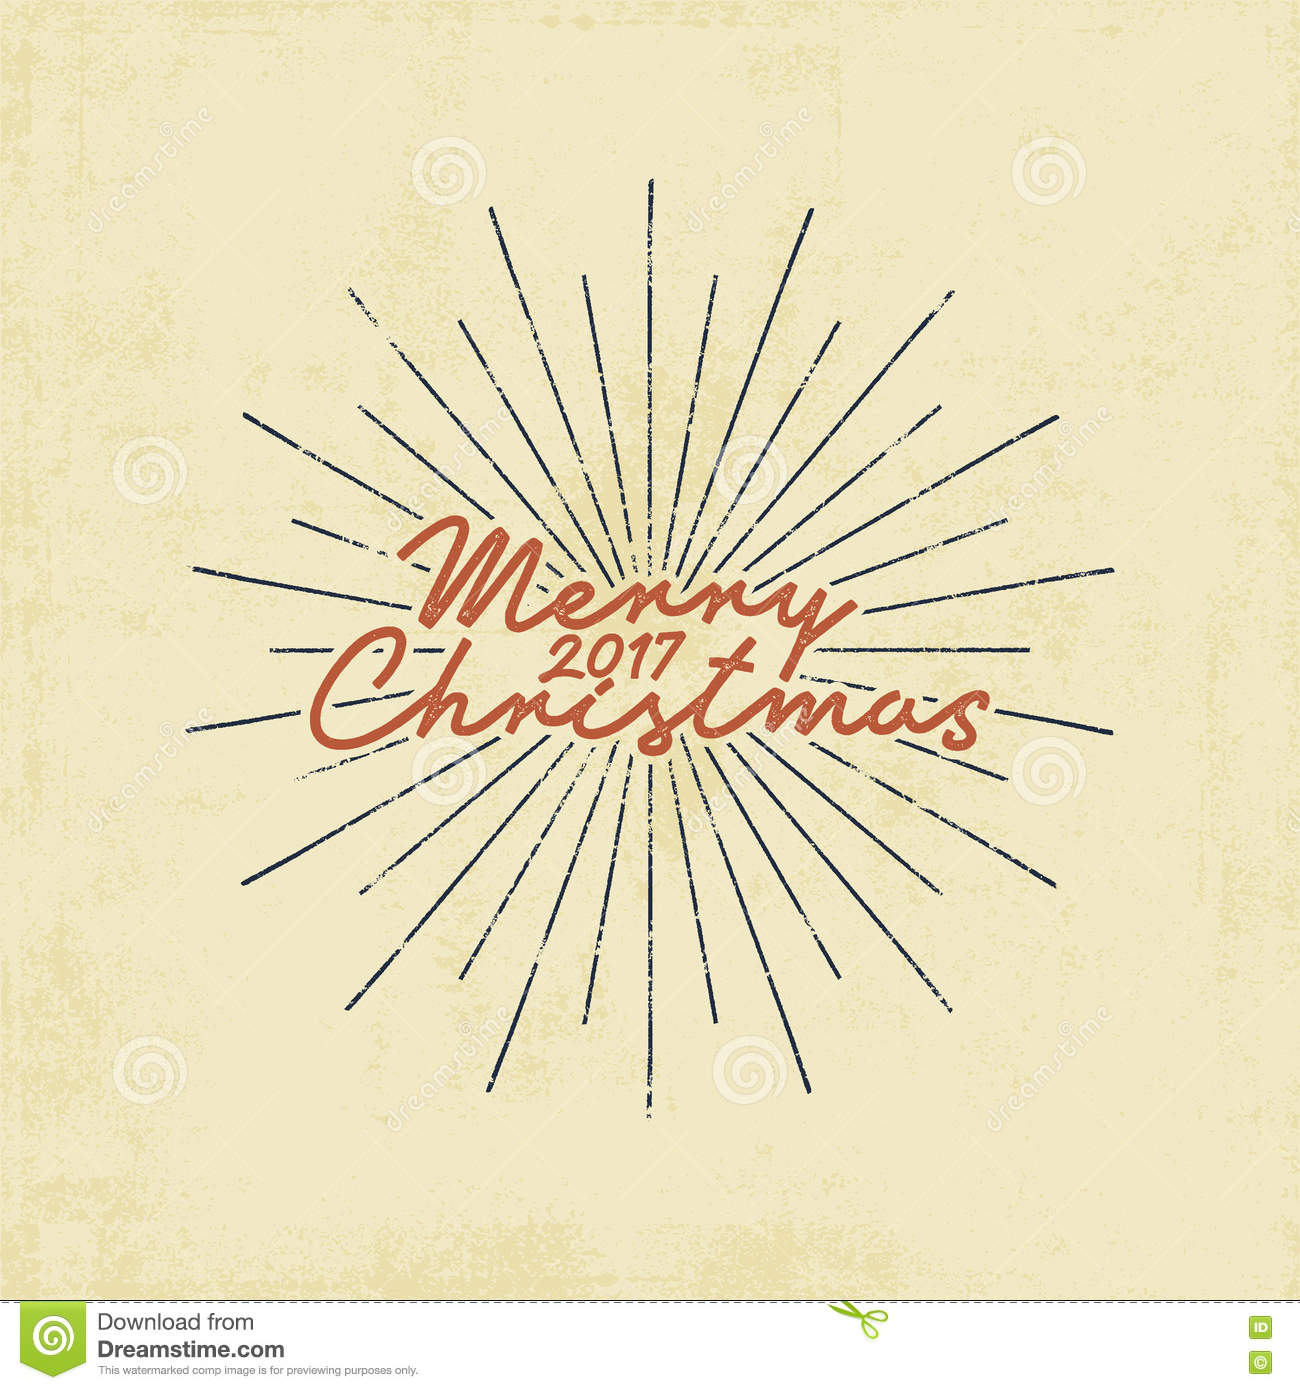 Merry Christmas 2017 Lettering Holiday Wishe Sayings And Vintage